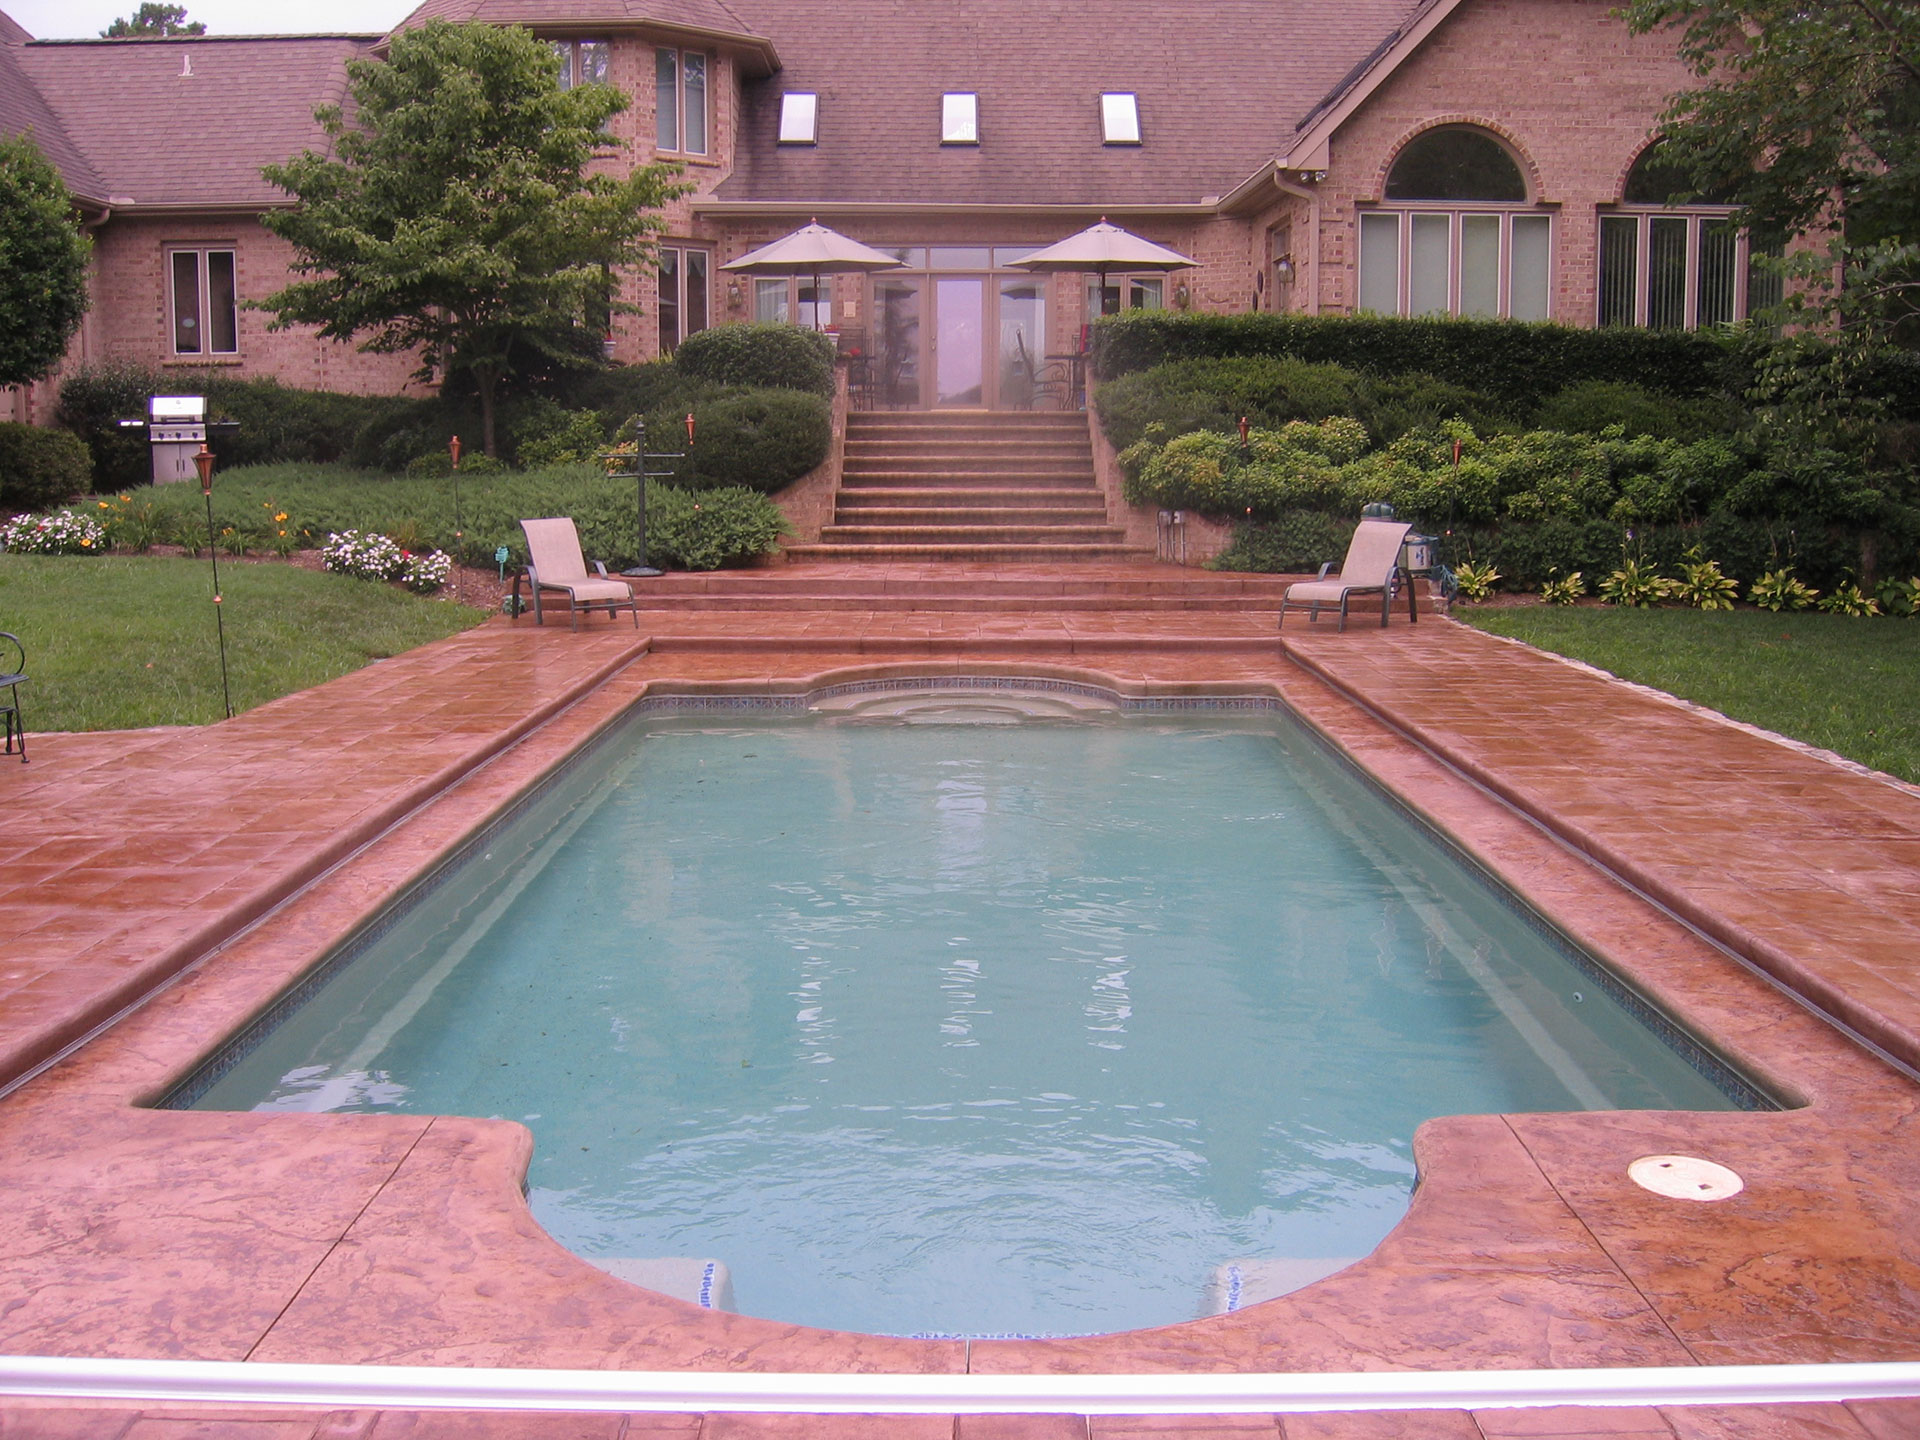 Raleigh fiberglass pools in ground above designs choice pool for Fiberglass pools above ground